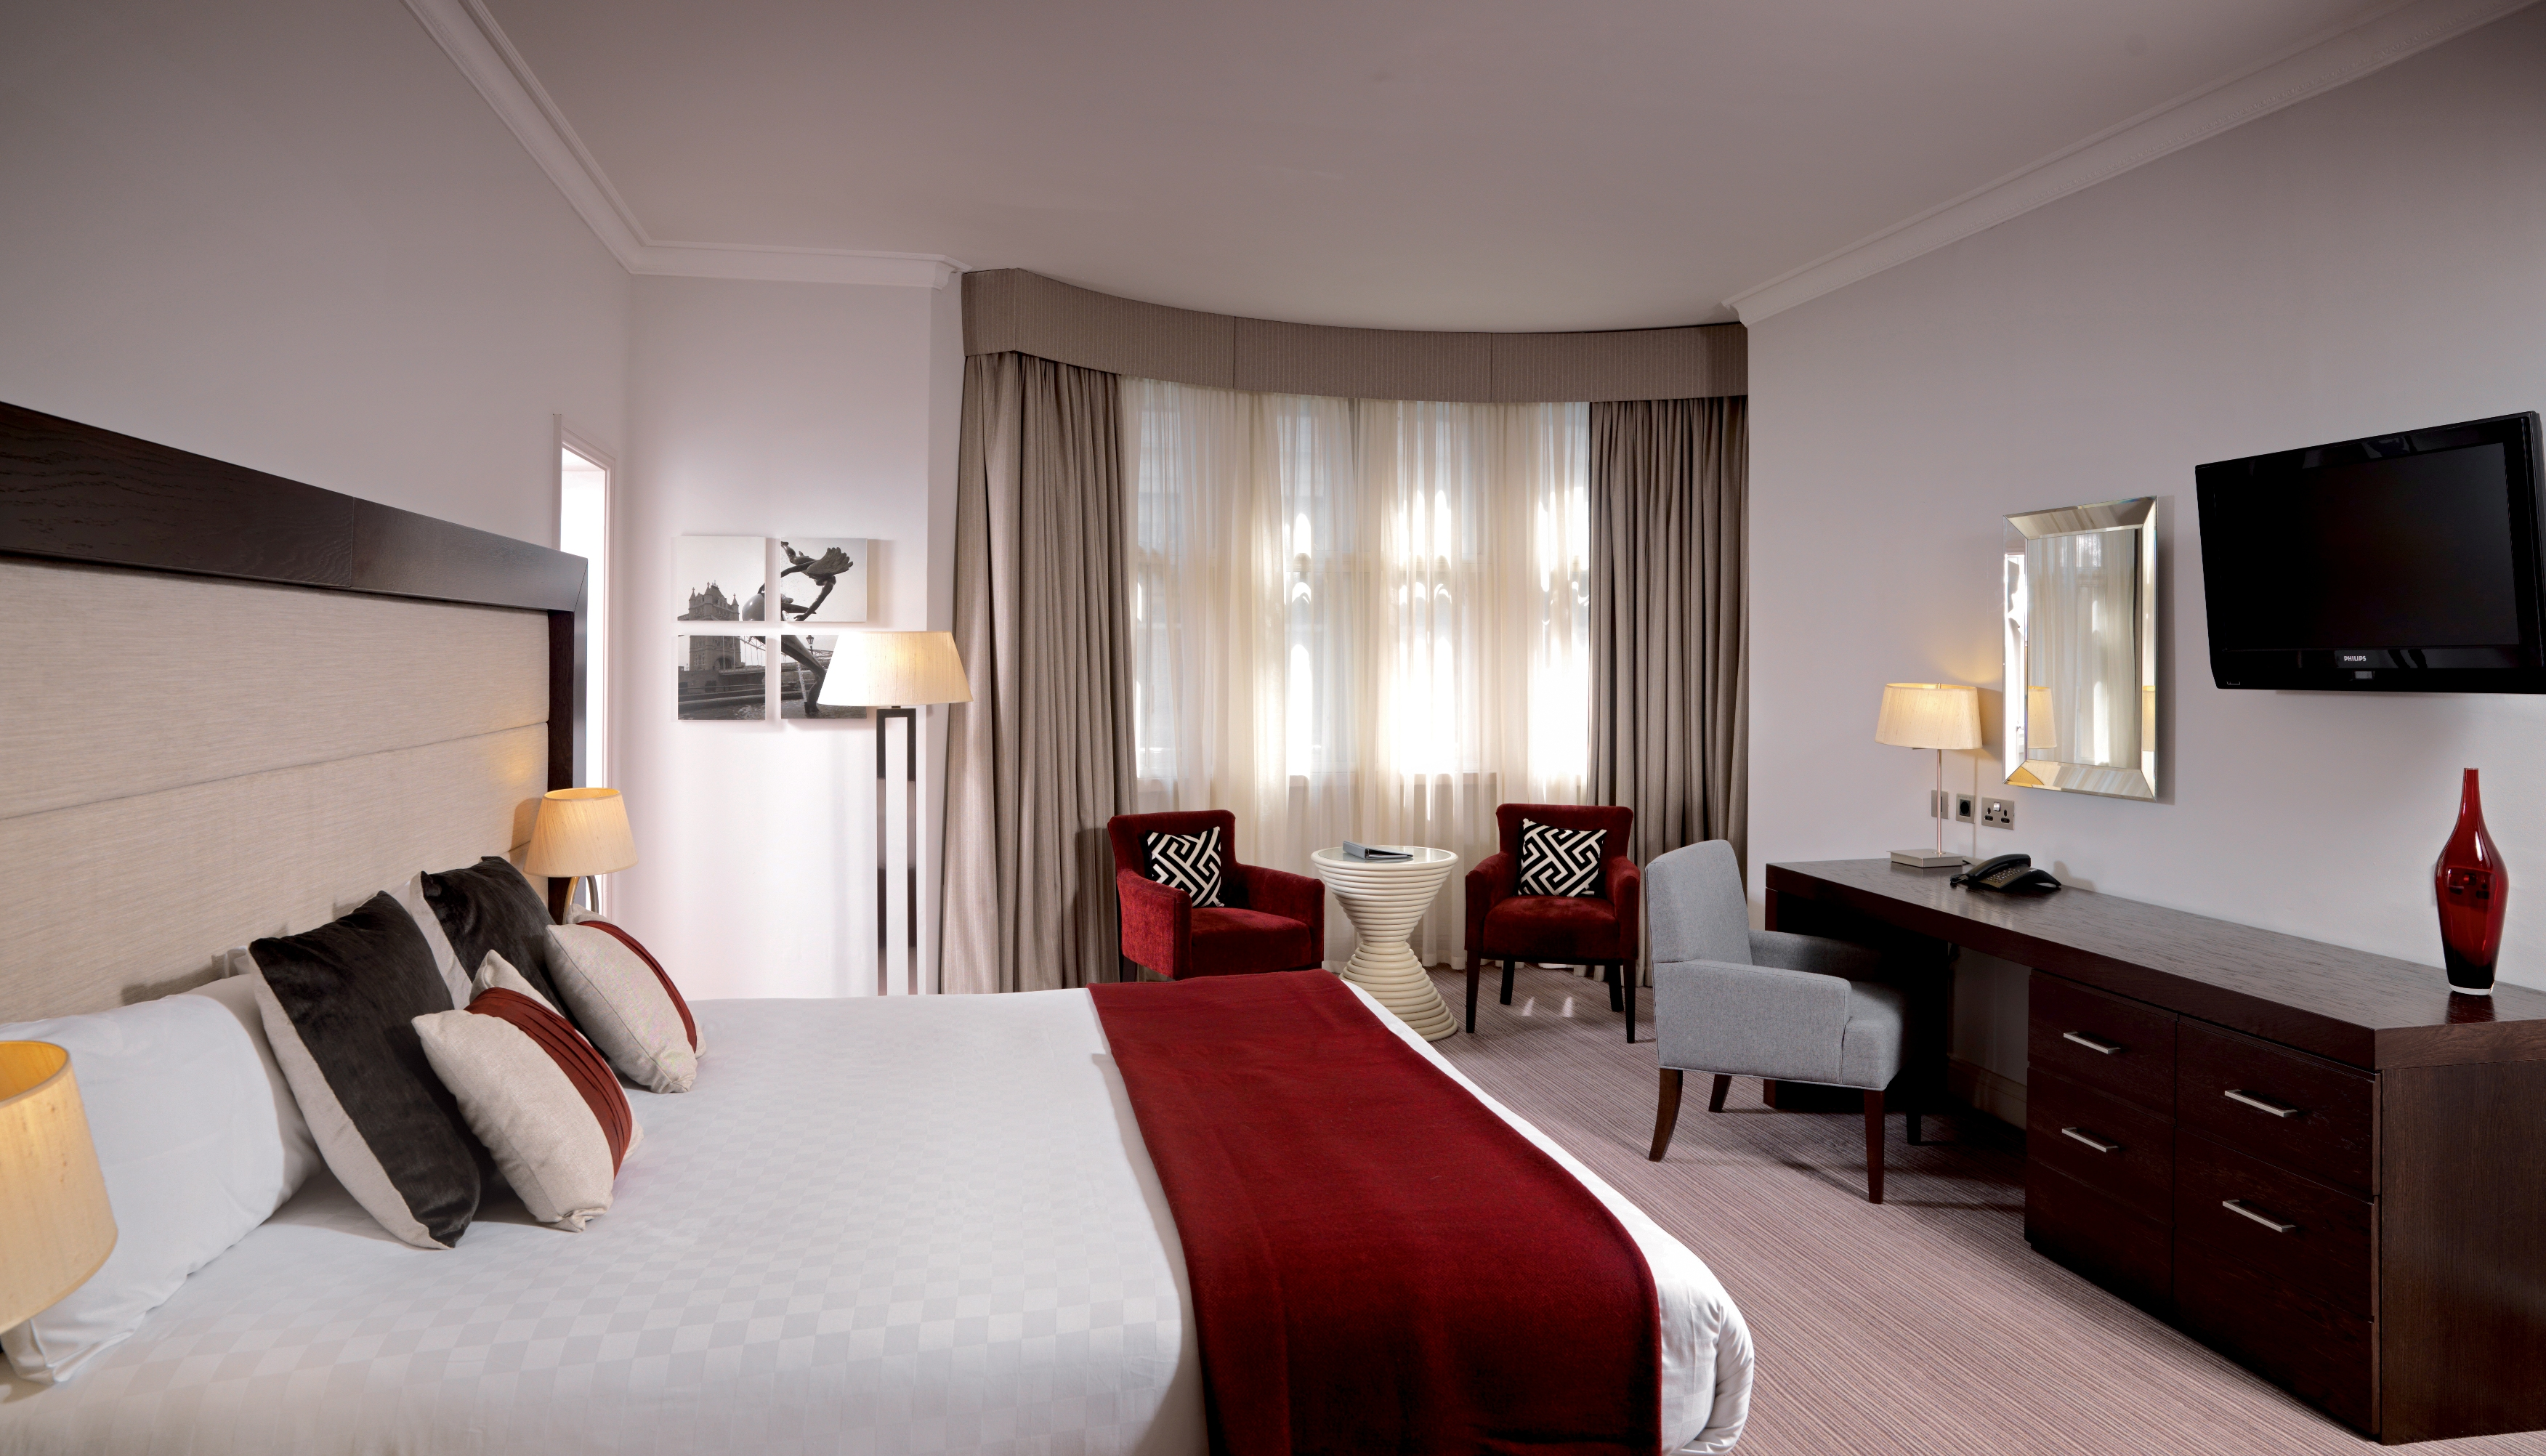 https://www.hotelsbyday.com/_data/default-hotel_image/0/4296/hi-h0bkr-27087806-thistle-london-kg-hotel-bedrooms-executive-king.jpg